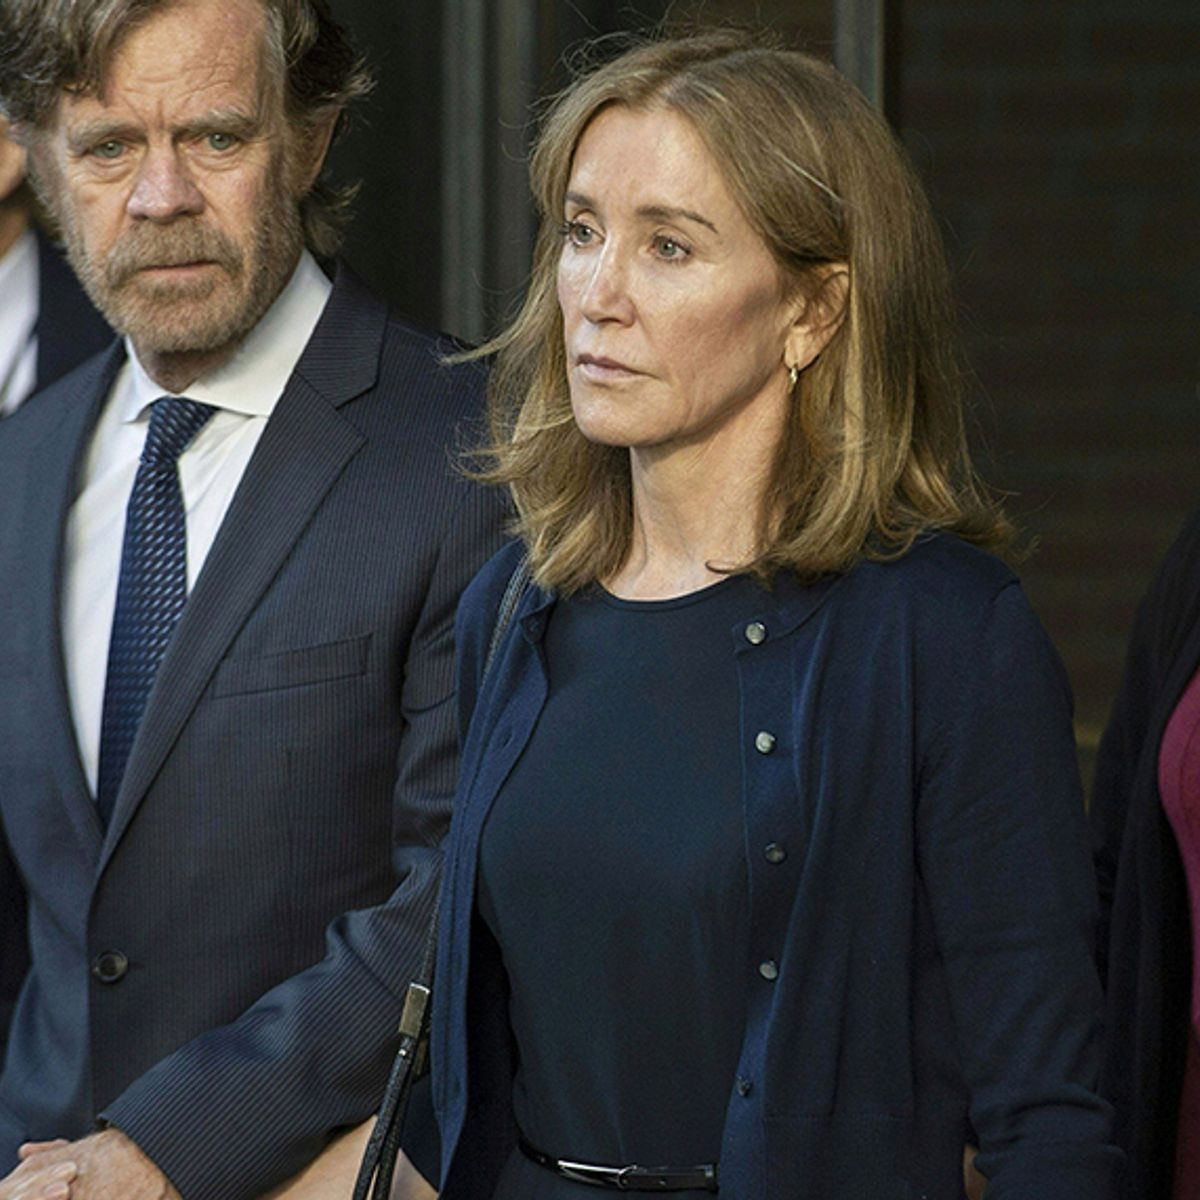 Felicity Huffman enters prison for college admissions cheating scheme